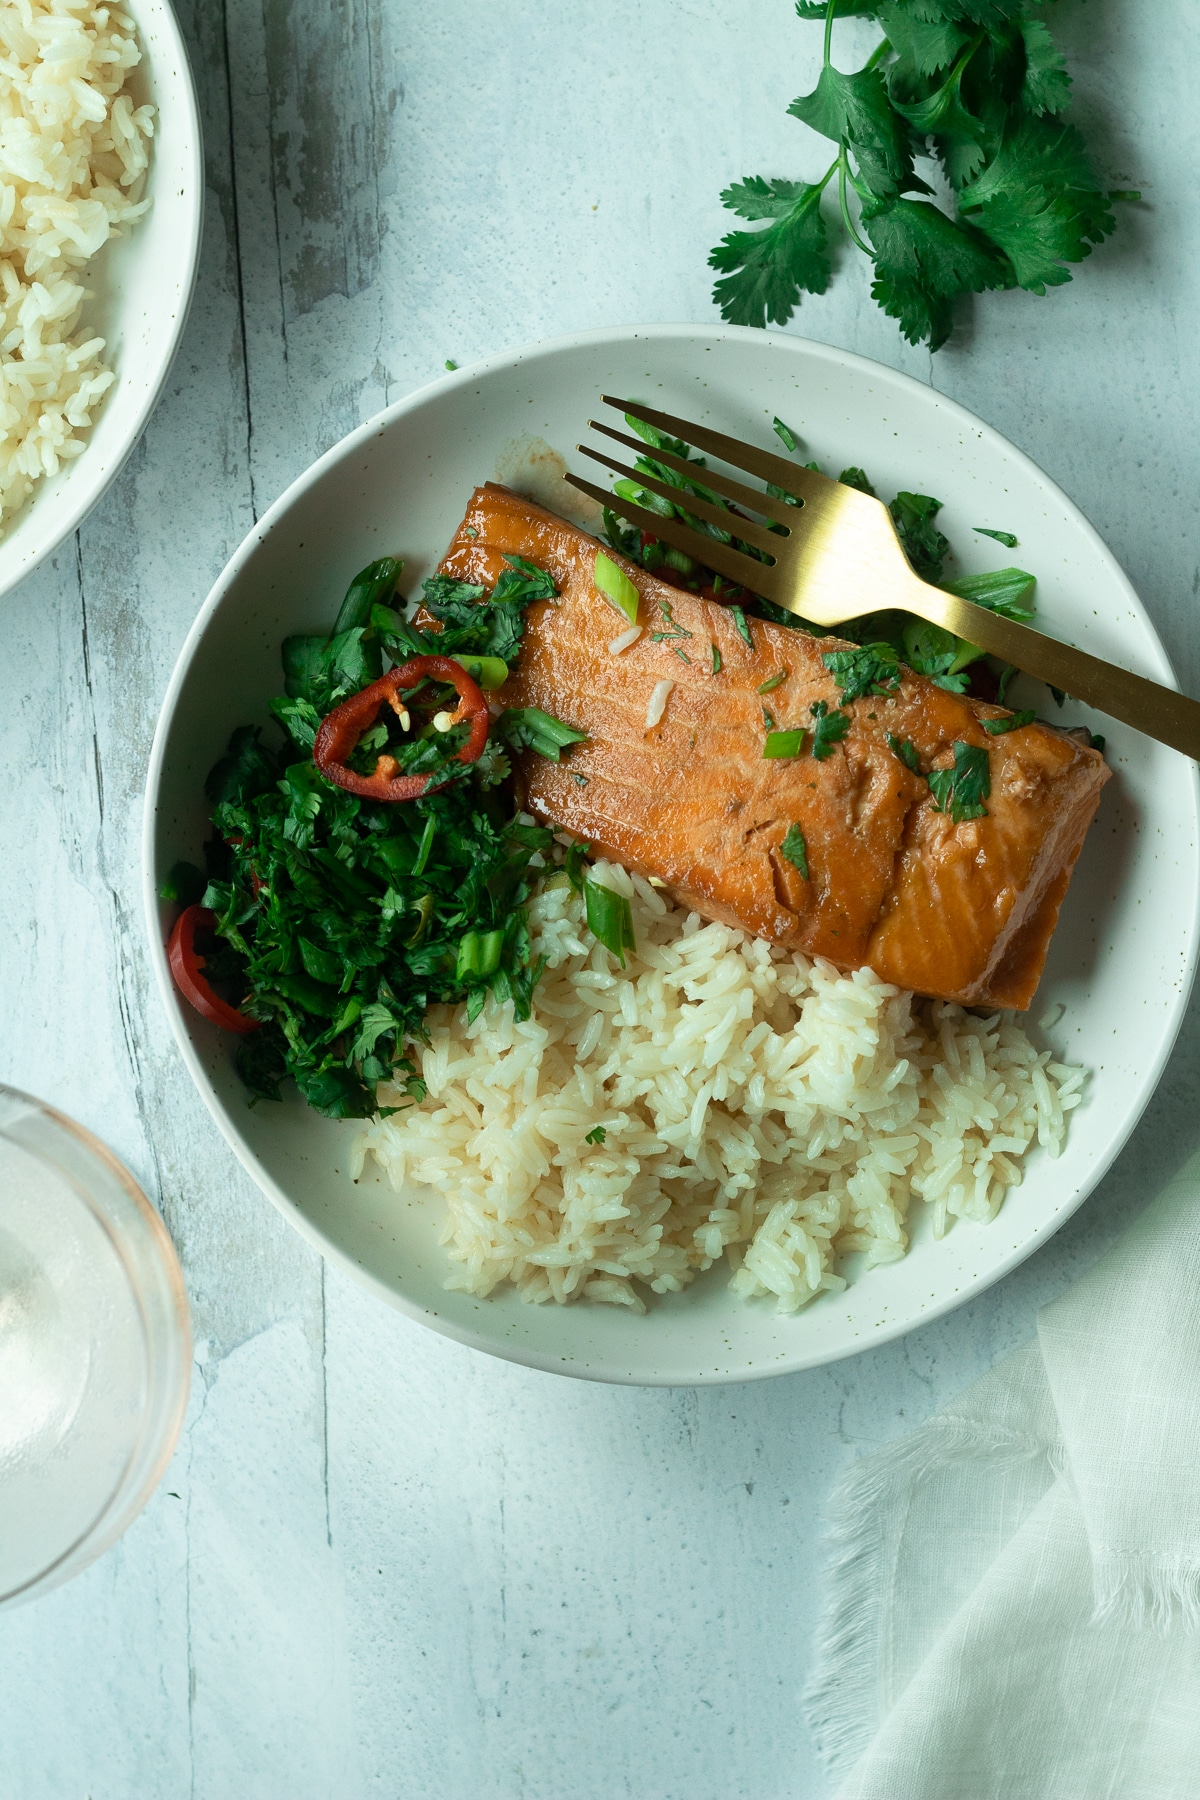 Salmon and rice on plate with herb chili mix with cilantro leaves around plate